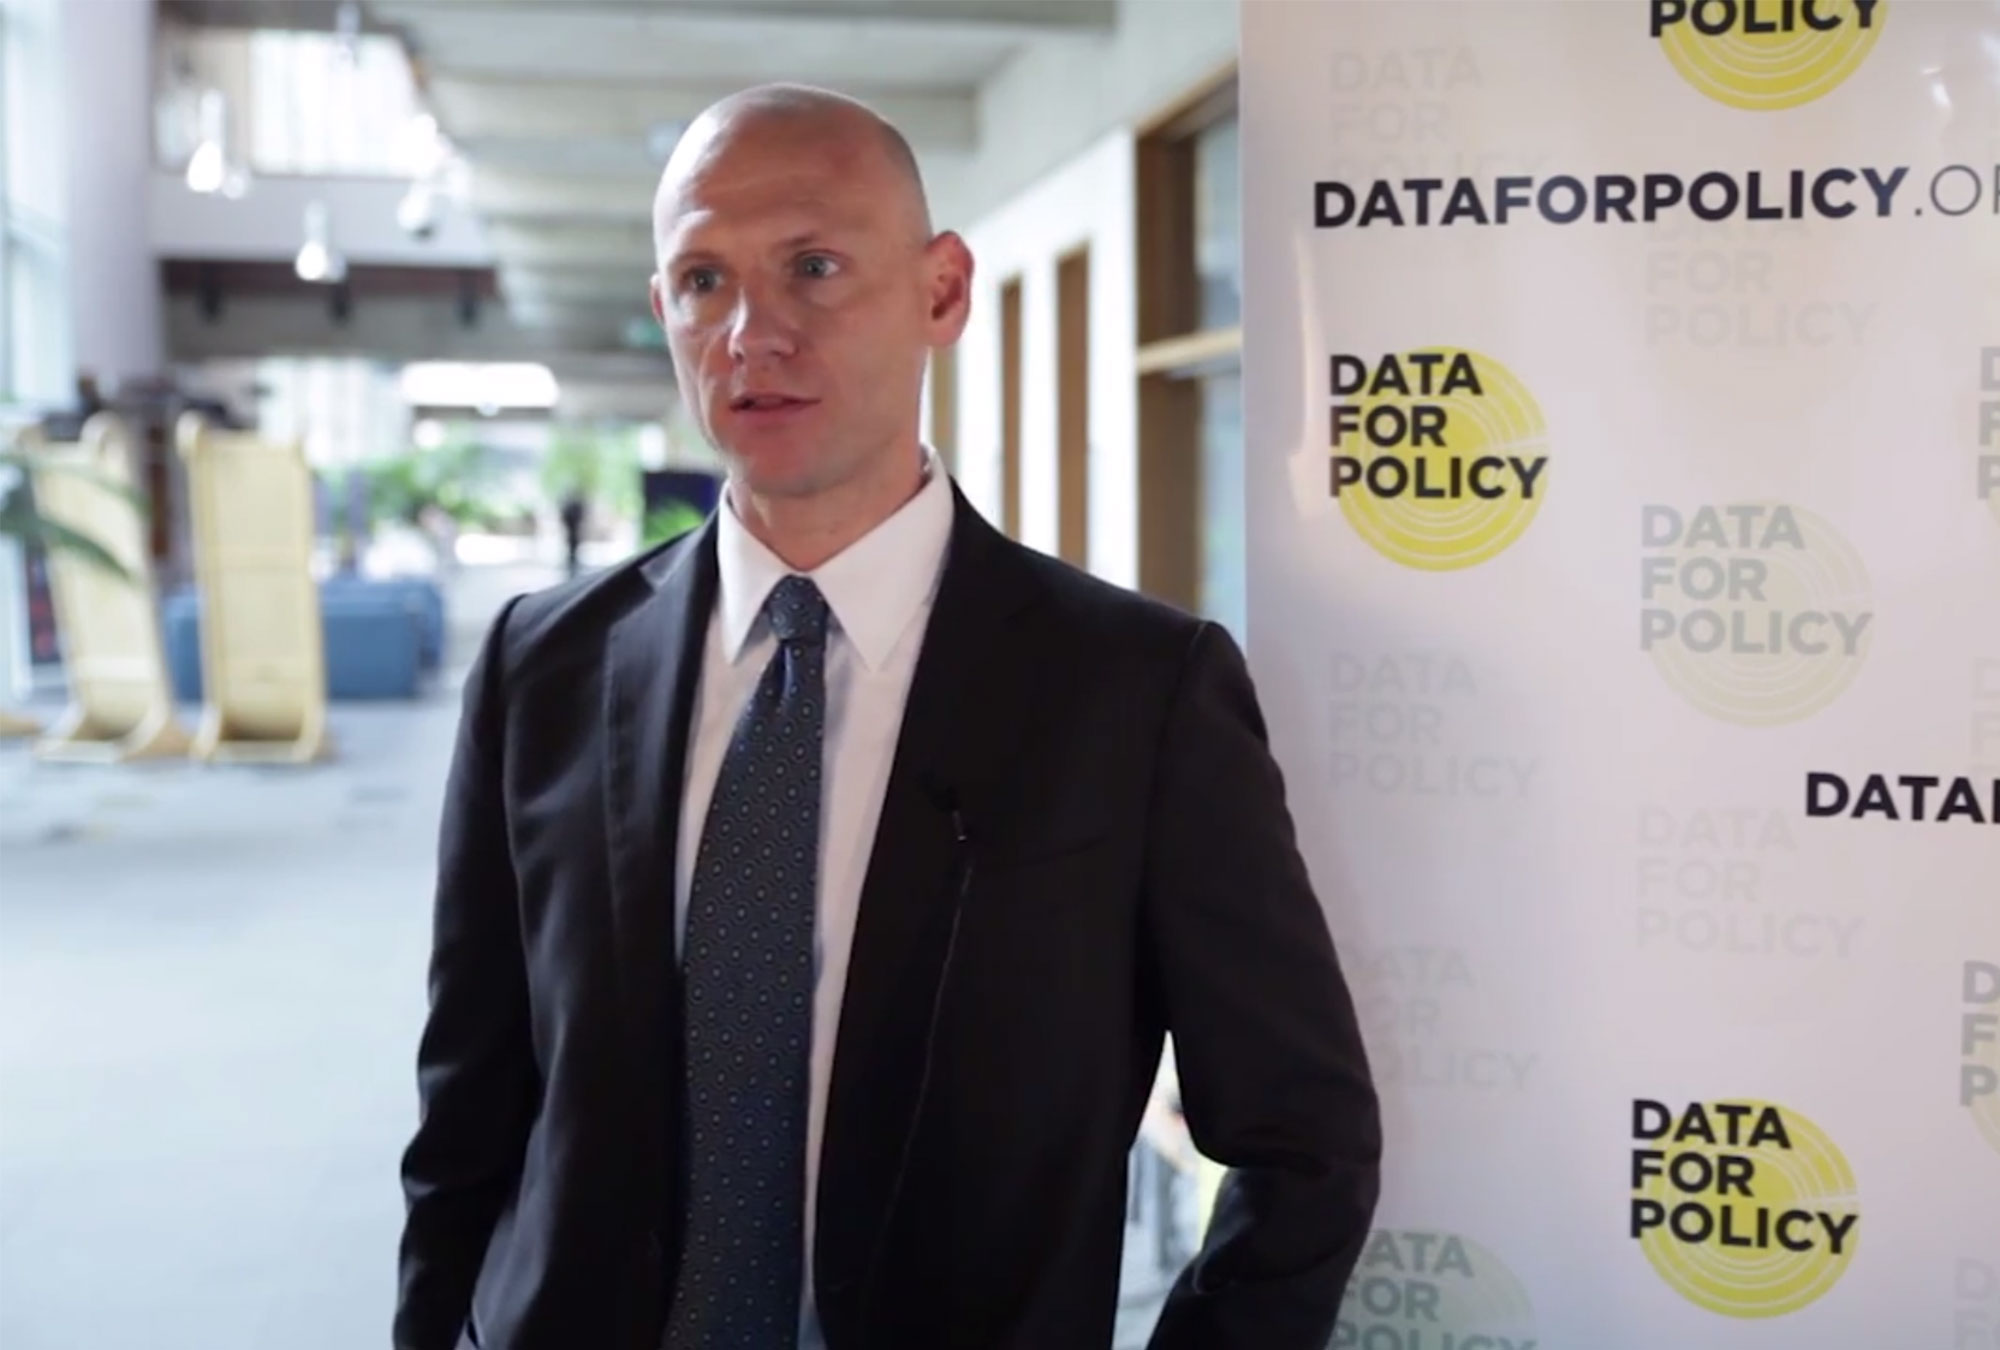 Quentin Palfrey stands in front of Data for Policy banner